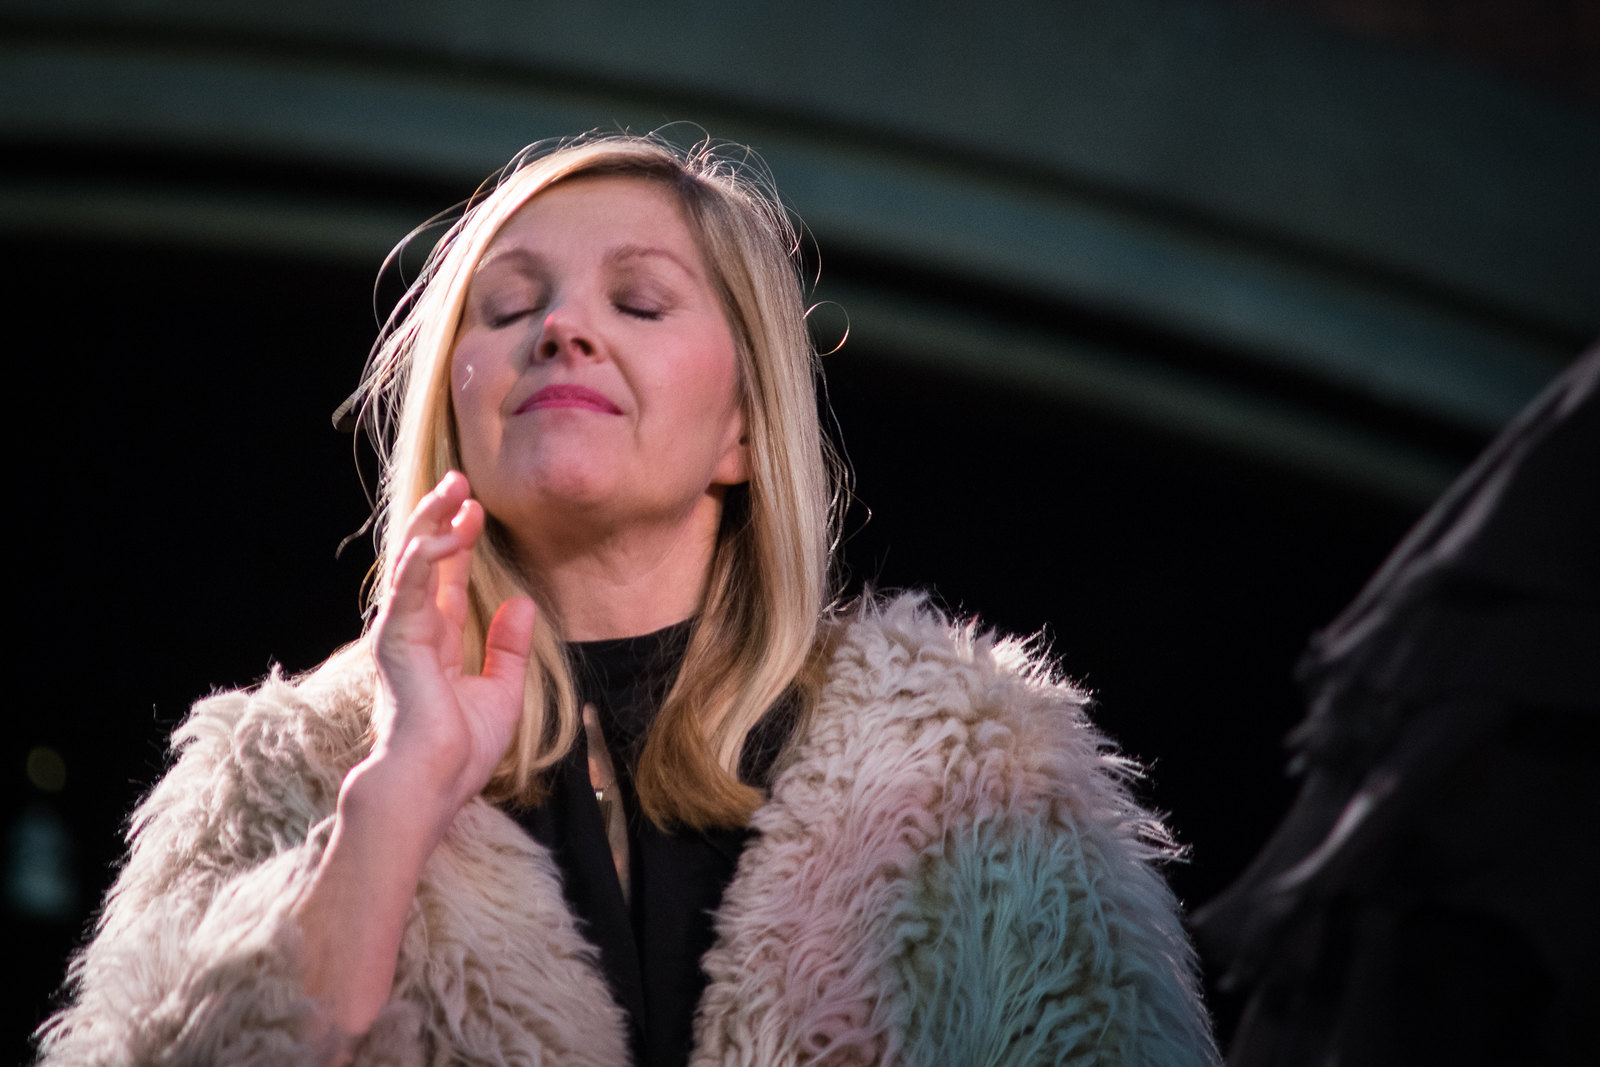 Sarah Cracknell in the The Papas and the Mamas - Daylight Music 24th January 2015